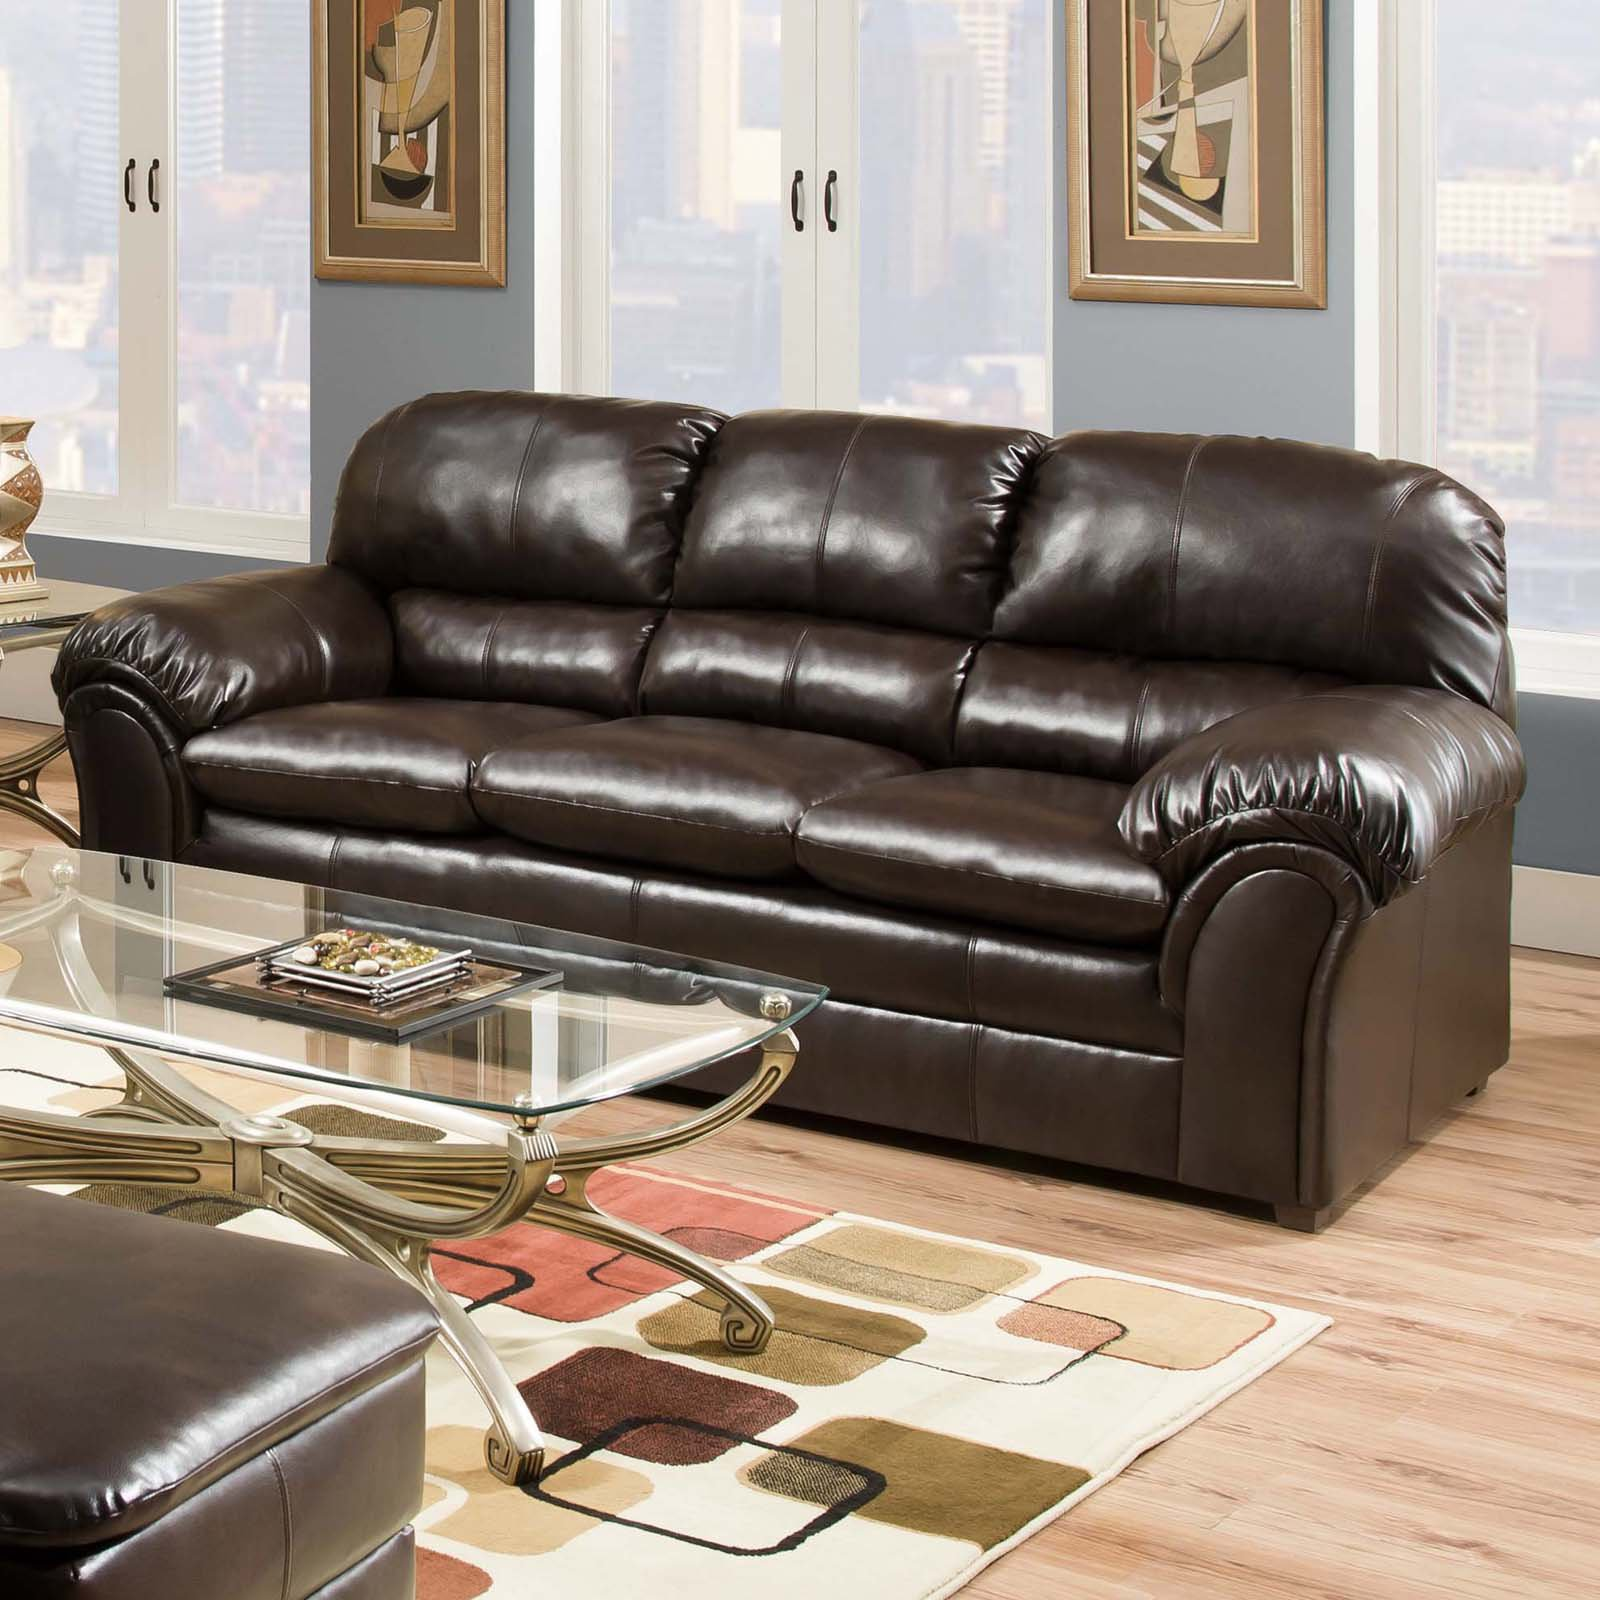 simmons judson living room collection. simmons upholstery vintage riverside bonded leather sofa judson living room collection